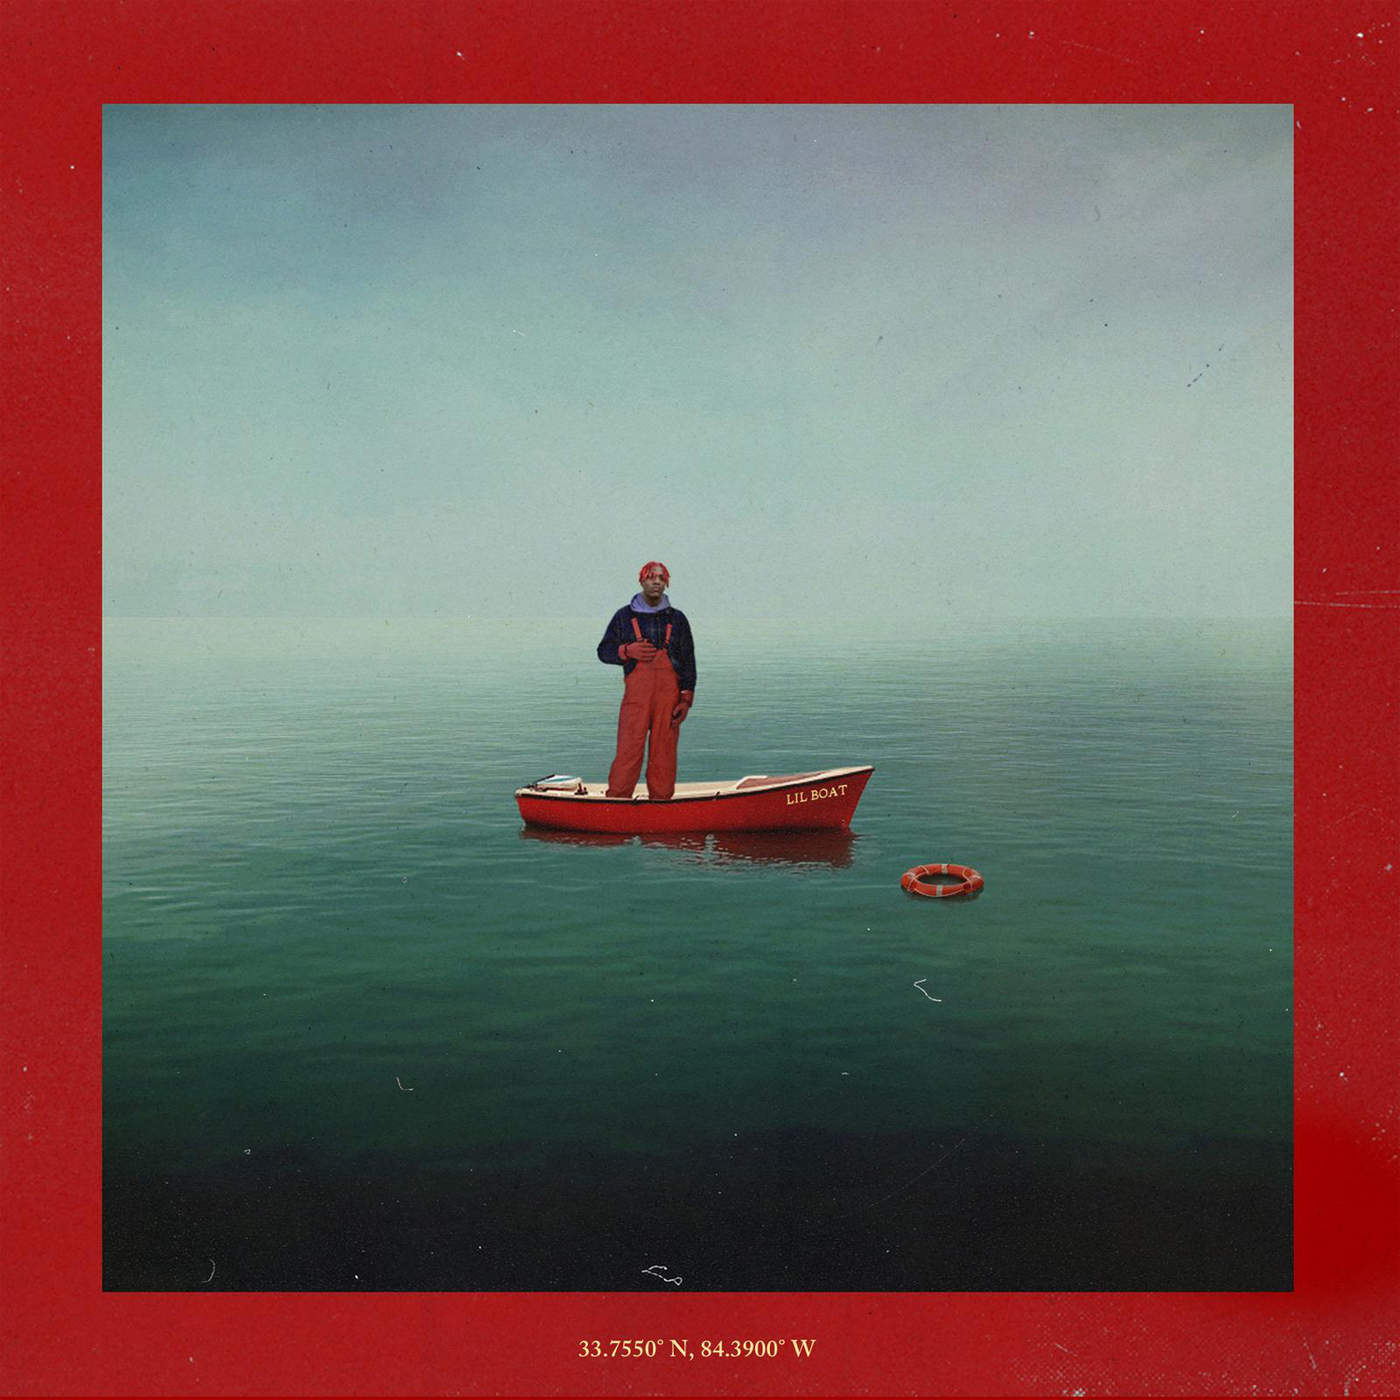 Lil Yachty - Lil Boat Cover